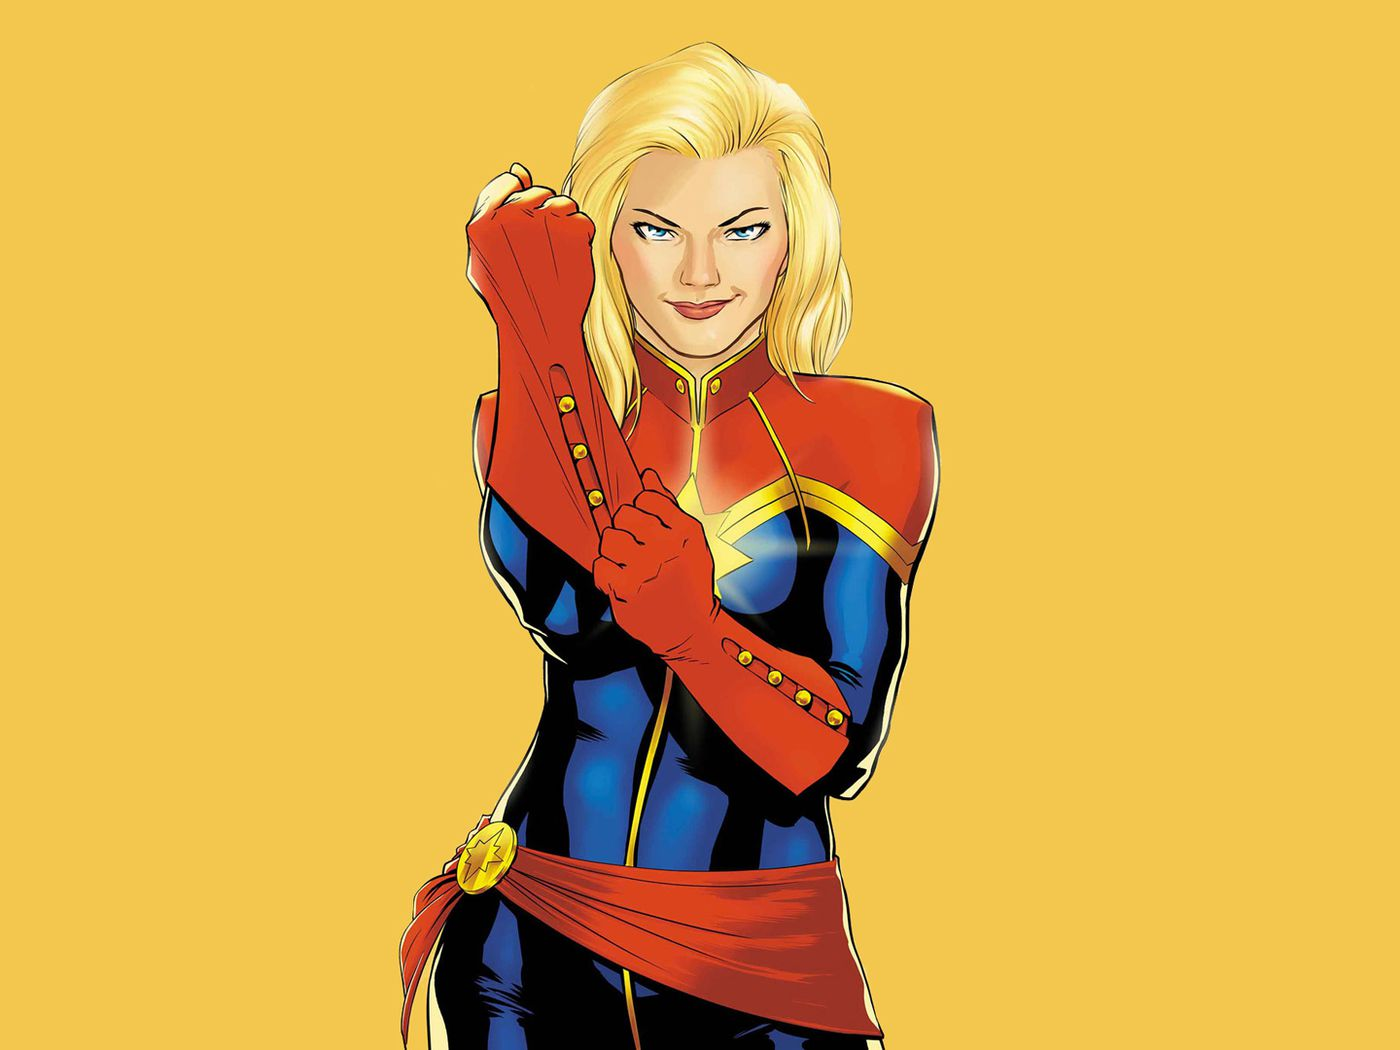 Brie Larson S Captain Marvel Costume Revealed In First Look Photos Polygon Black panther costume royal blue gown gemma chan valentino gowns gown photos red carpet gowns marvel women super hero costumes captain marvel. brie larson s captain marvel costume